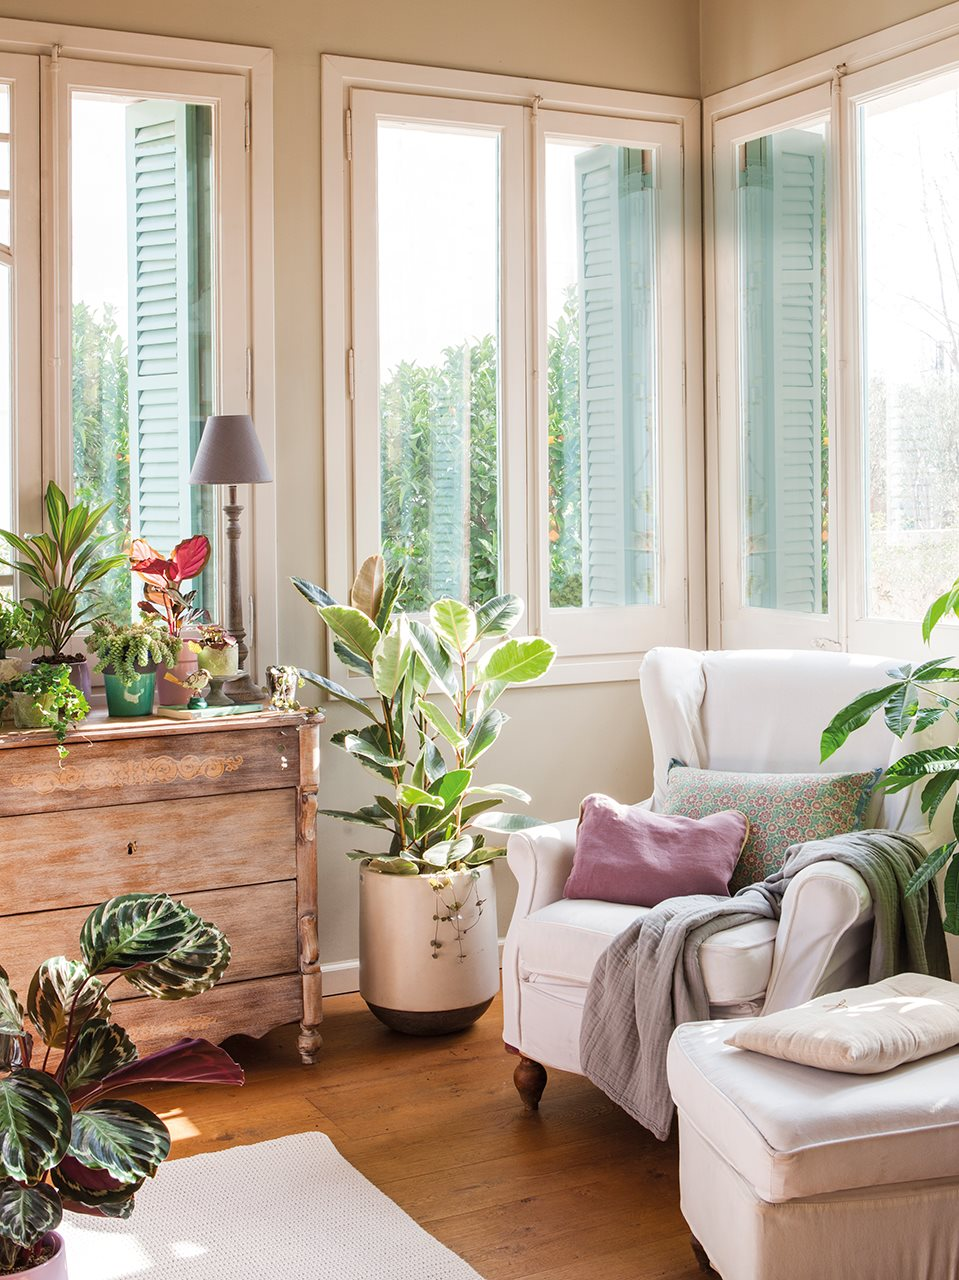 C mo decorar con plantas for Decoracion con plantas en living